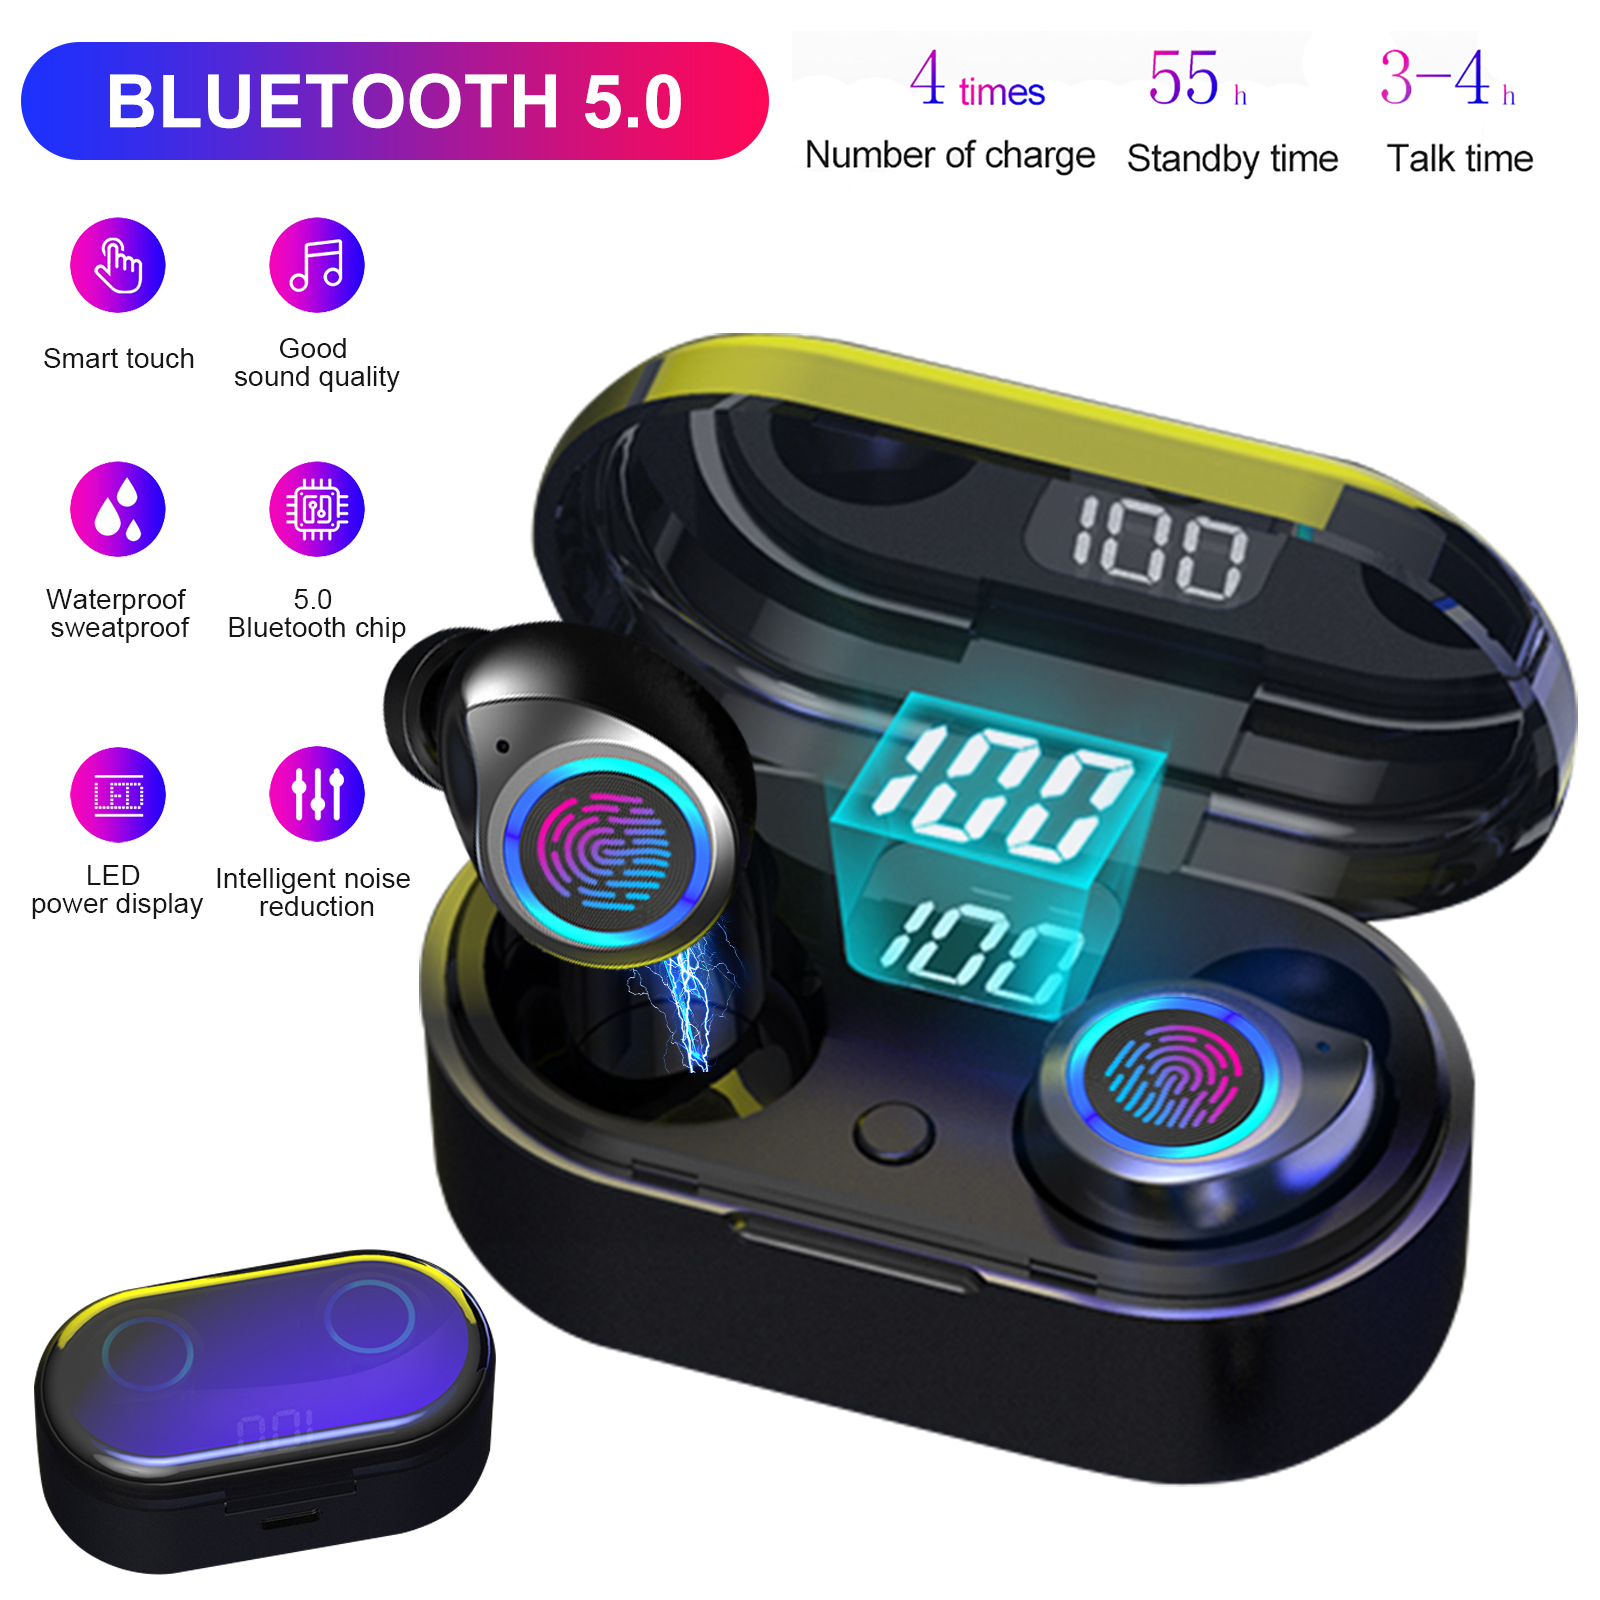 Bluetooth 5 0 Wireless Earbuds With Charging Case Touch Control Headset Tws Stereo Noise Canceling Waterproof Headphones In Ear Built In Mic Mini Sport Earphones For Workout Running Gym Walmart Com Walmart Com